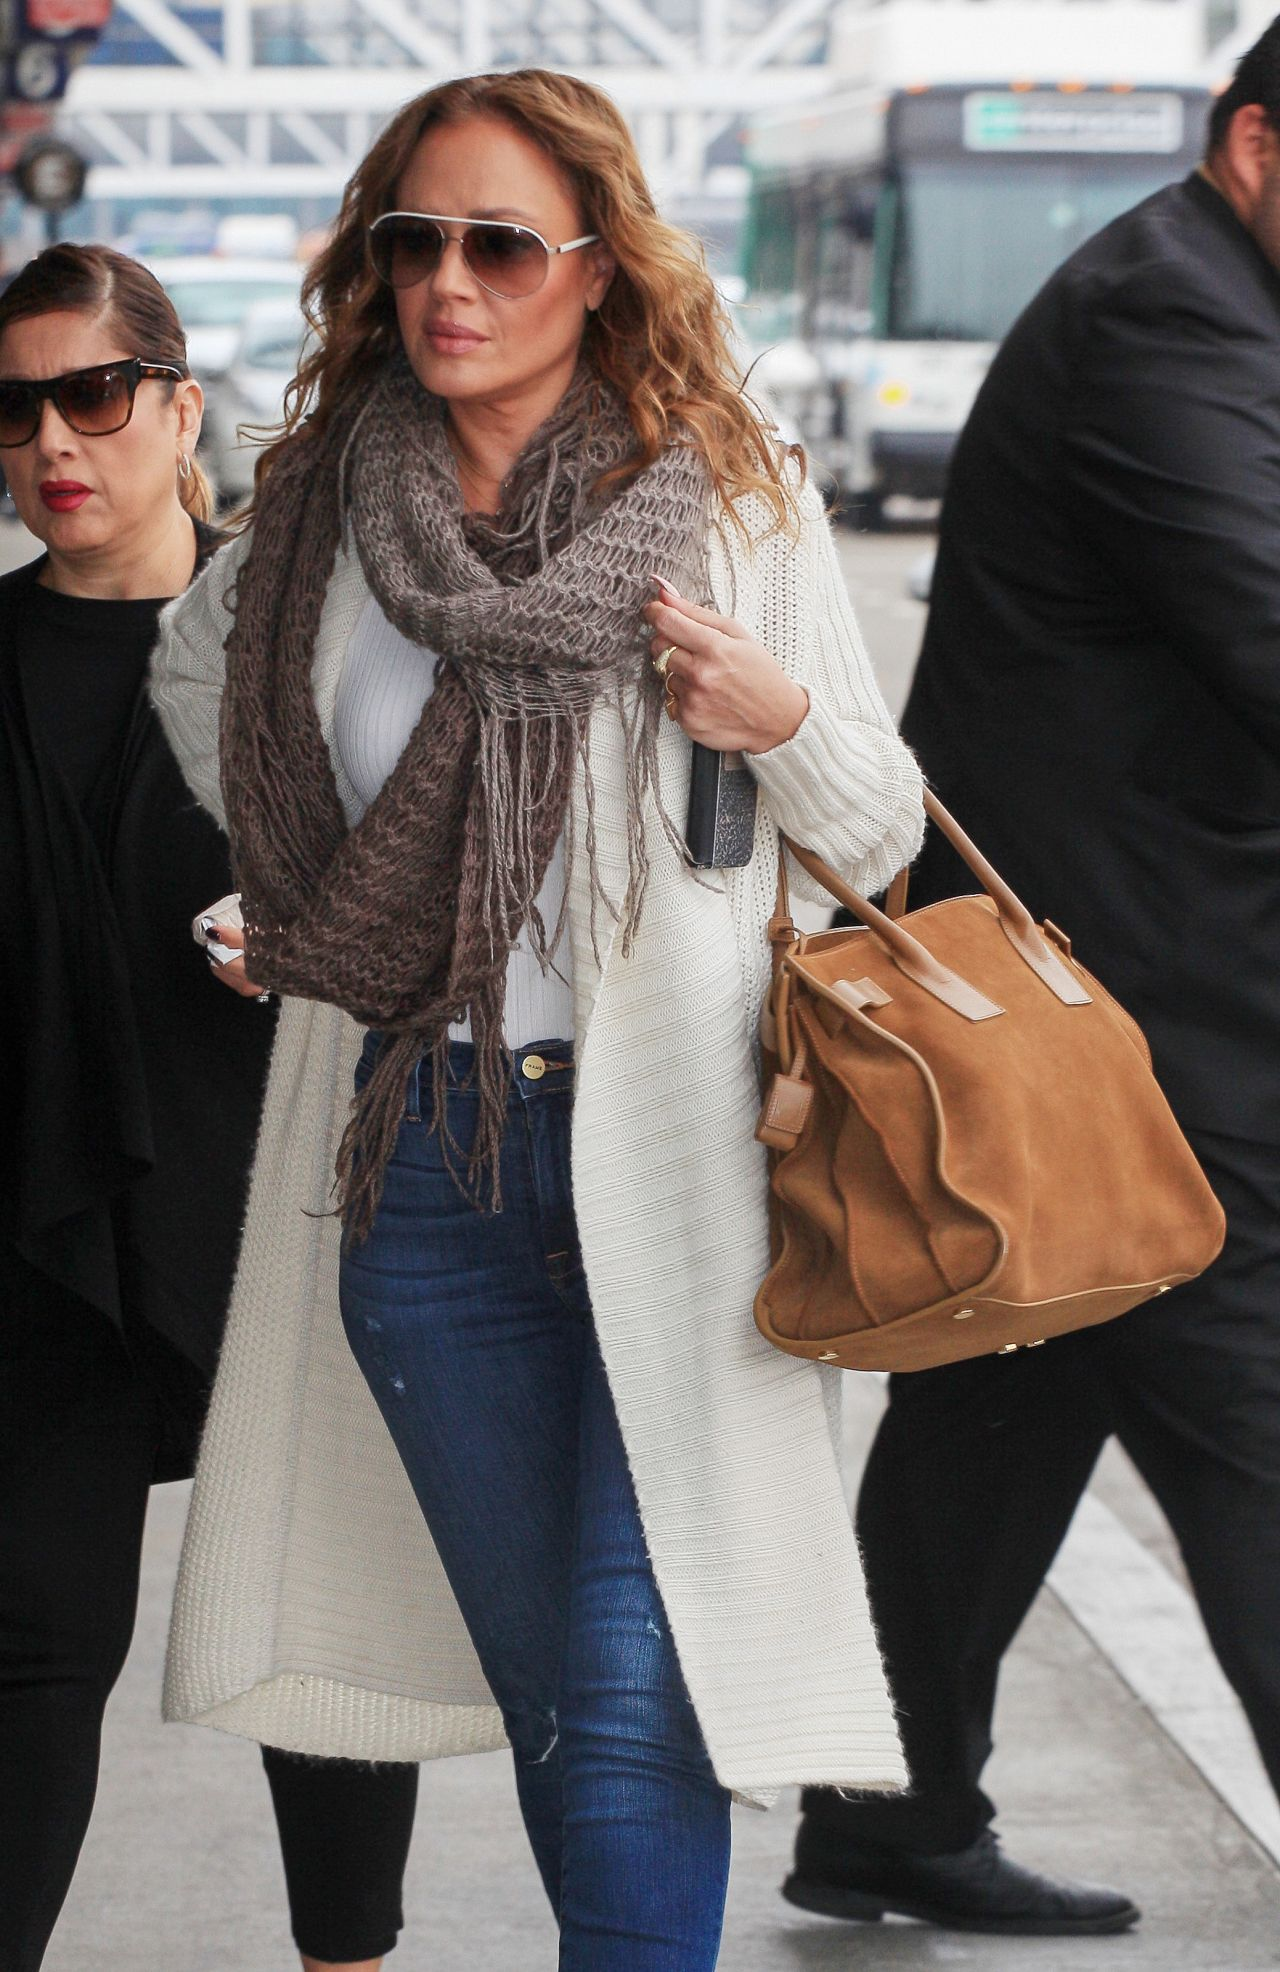 leah remini travel outfit  31  2016